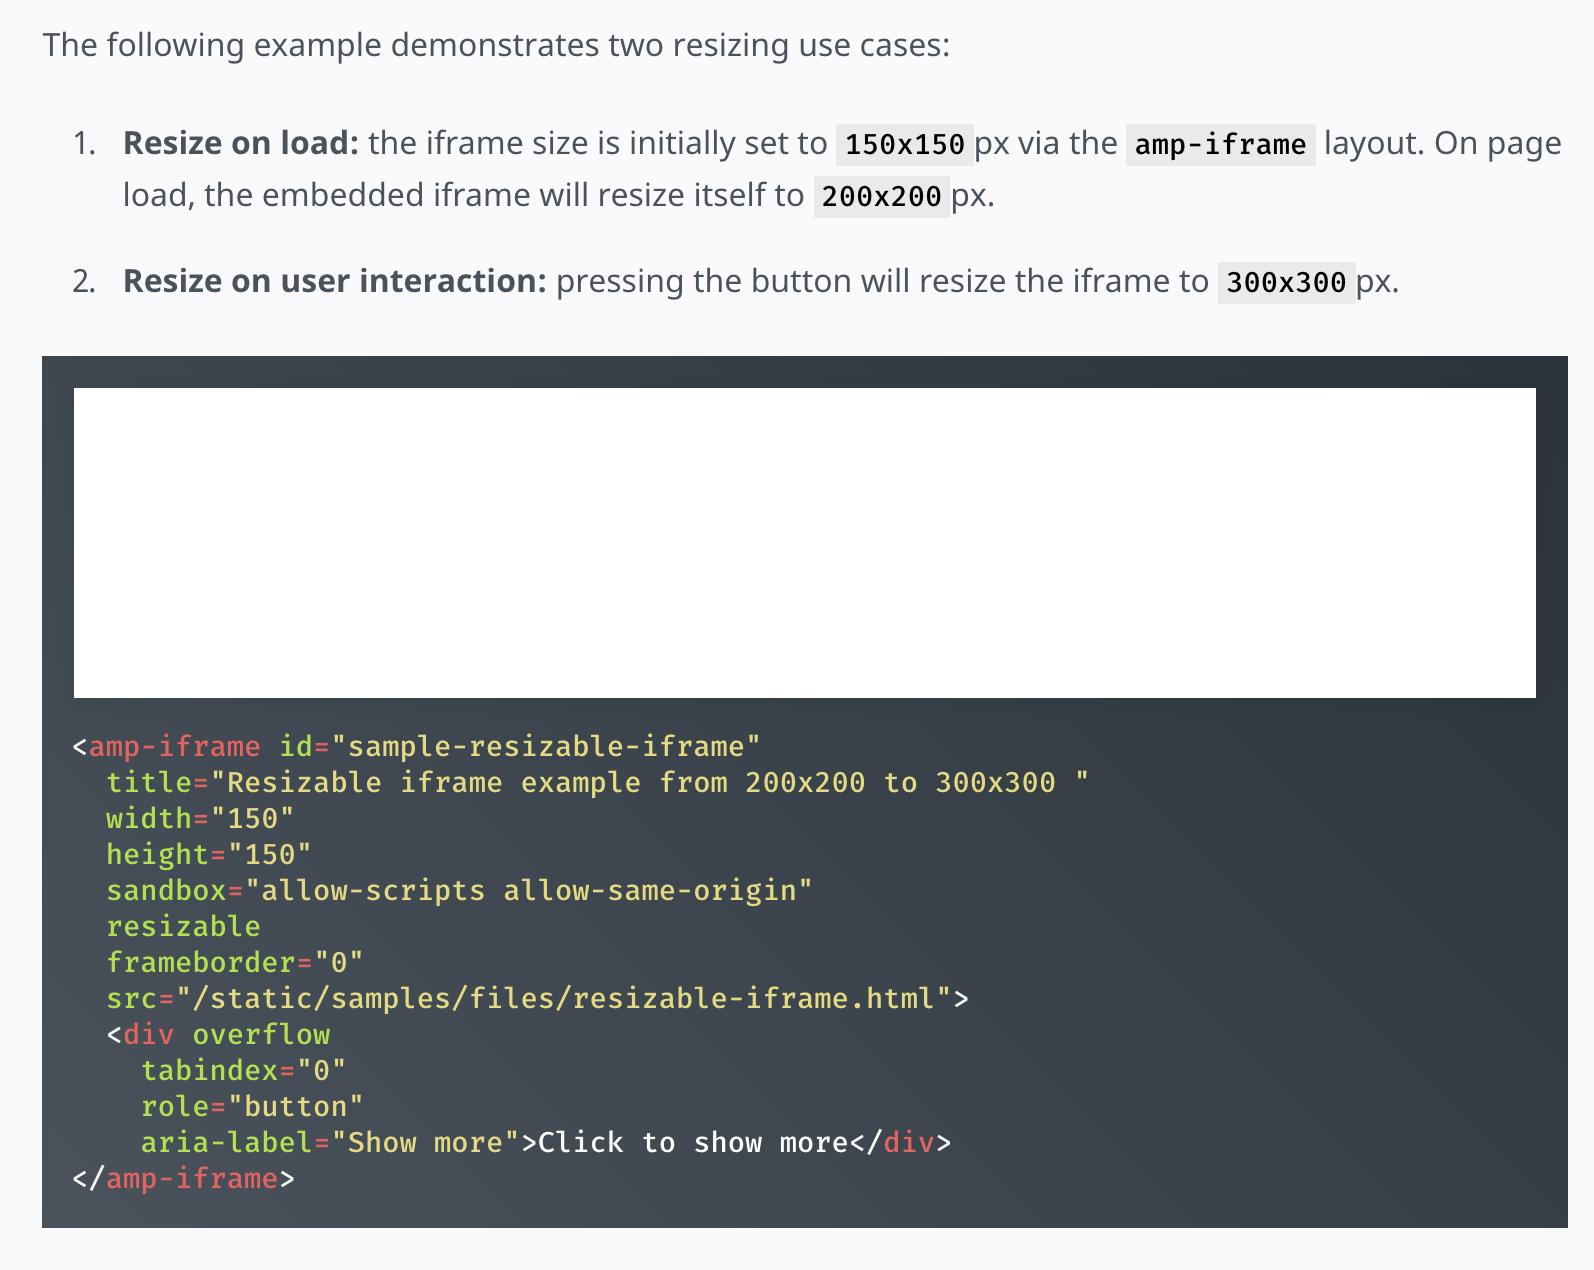 Resizable amp-iframe example is broken (Origin of <amp-iframe> must